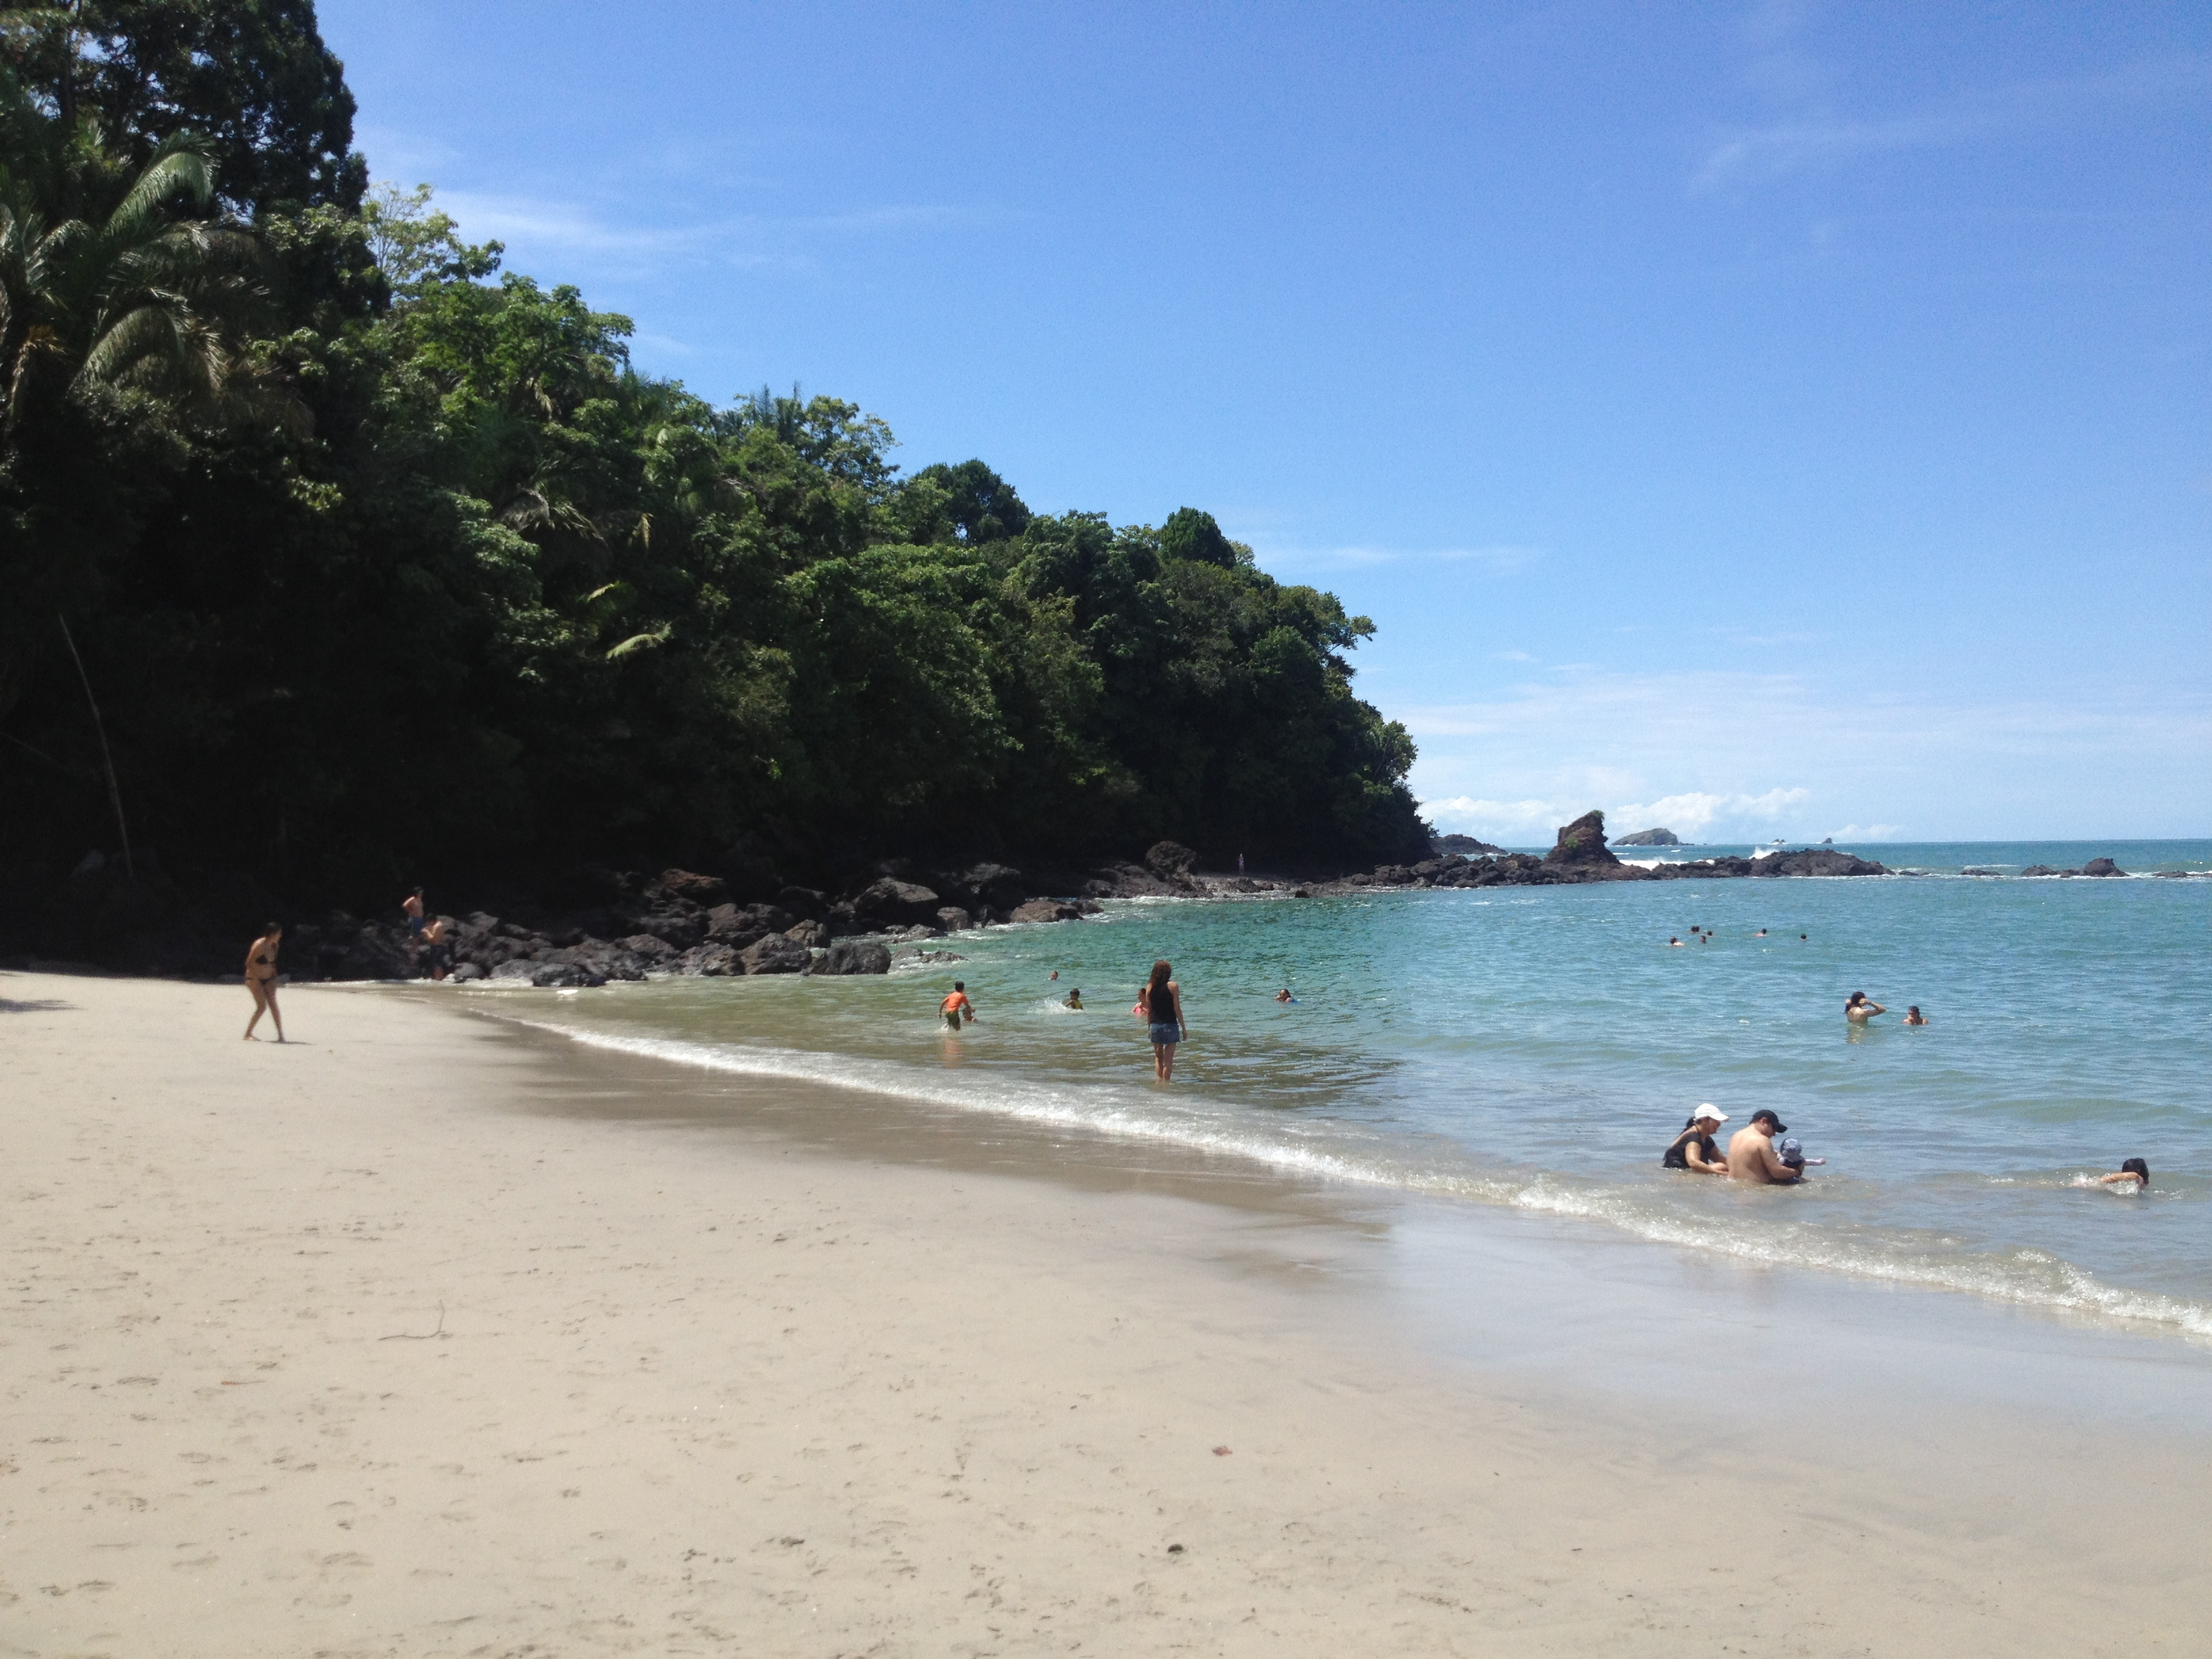 People Gather At One Of The Most Beautiful Beaches In Costa Rica Photograph By Brenda